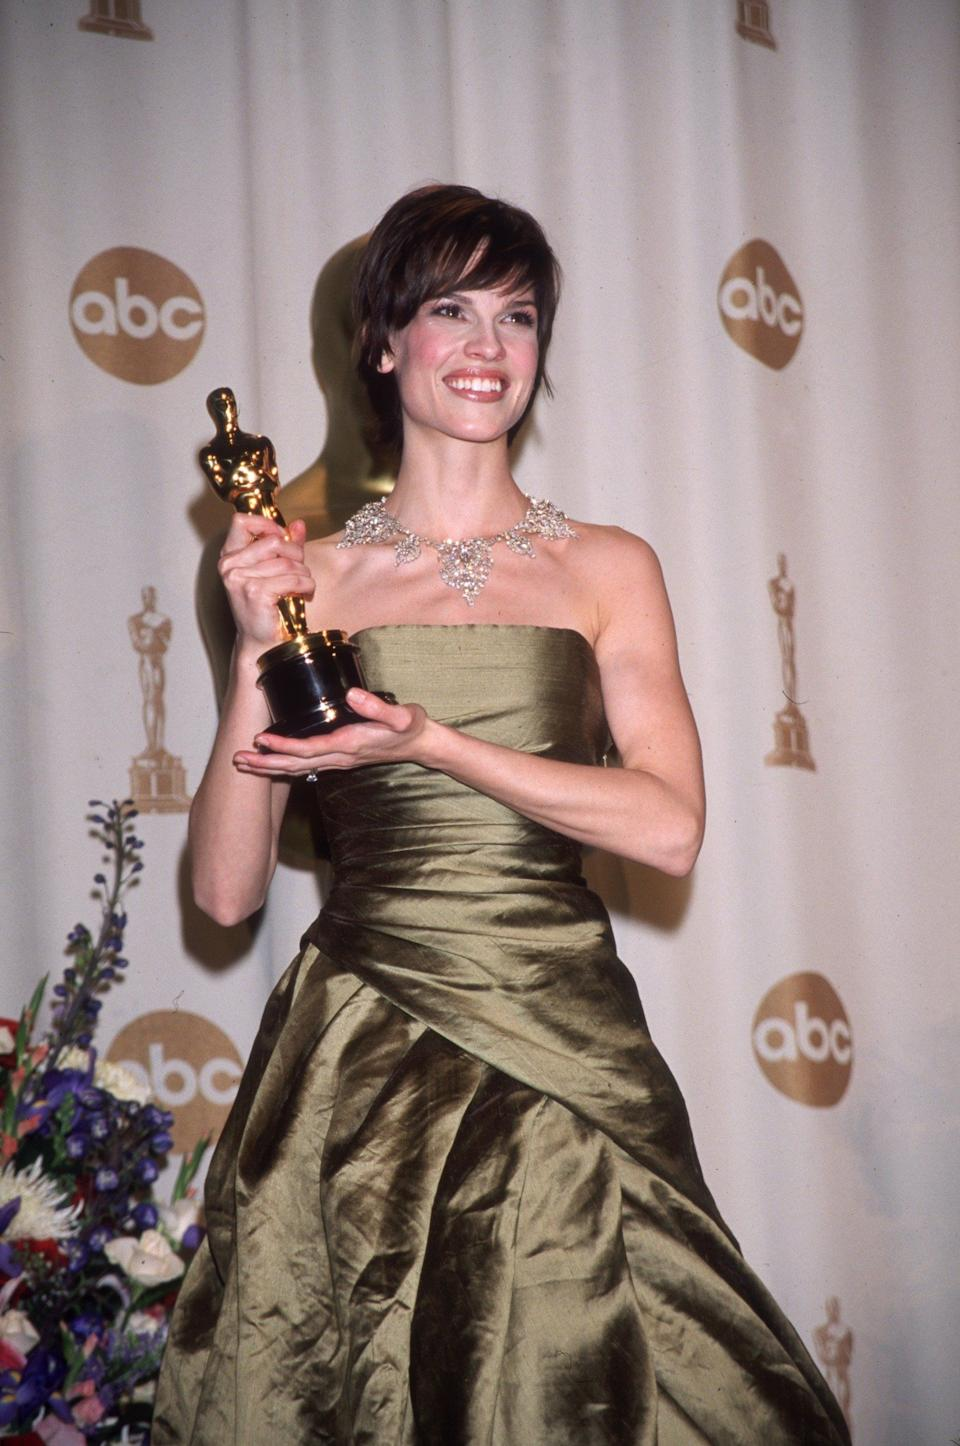 Hilary posing with her Oscar after winning for her role in Boys Don't Cry. (Photo: Getty Editorial)